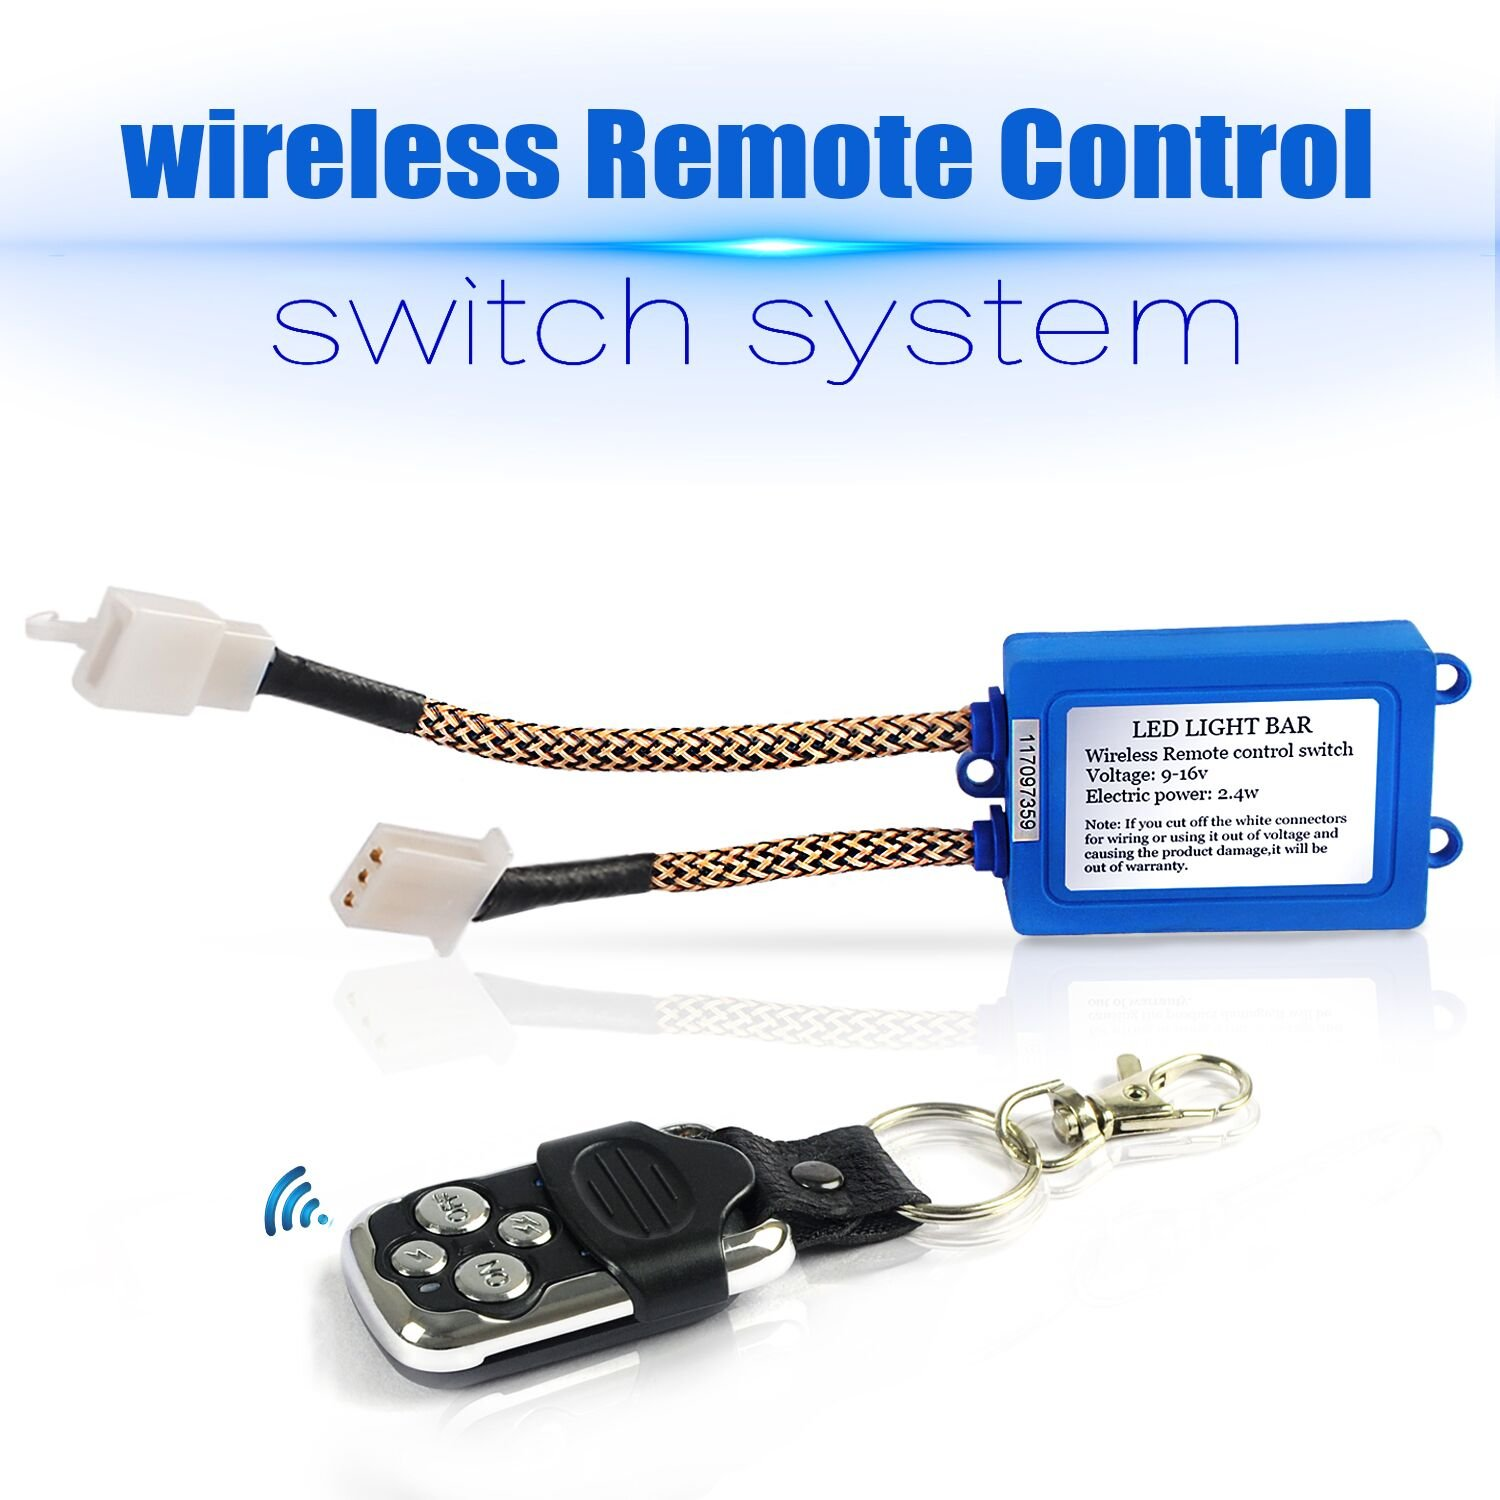 Jhe Led Light Bar Remote Control Switchrelay Wiring Power Cord 3 Wire Diagram As Well Transmitter Harness Switchwireless On Off Strobe Flash Pulse For